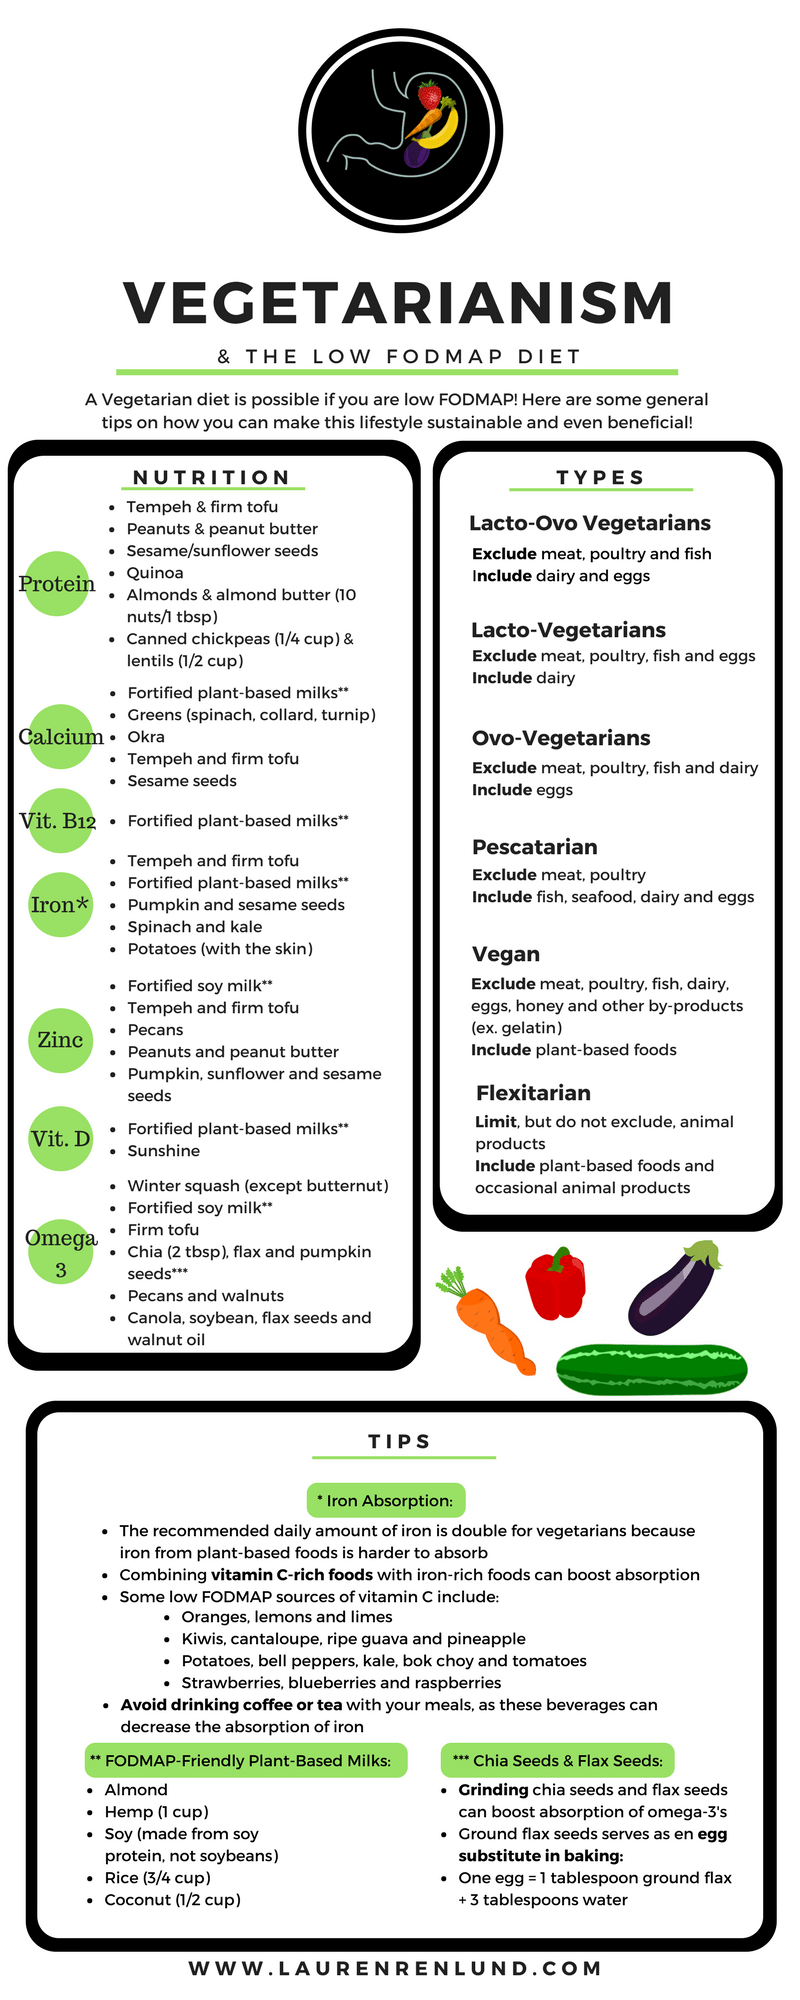 Vegetarianism and the Low FODMAP Diet